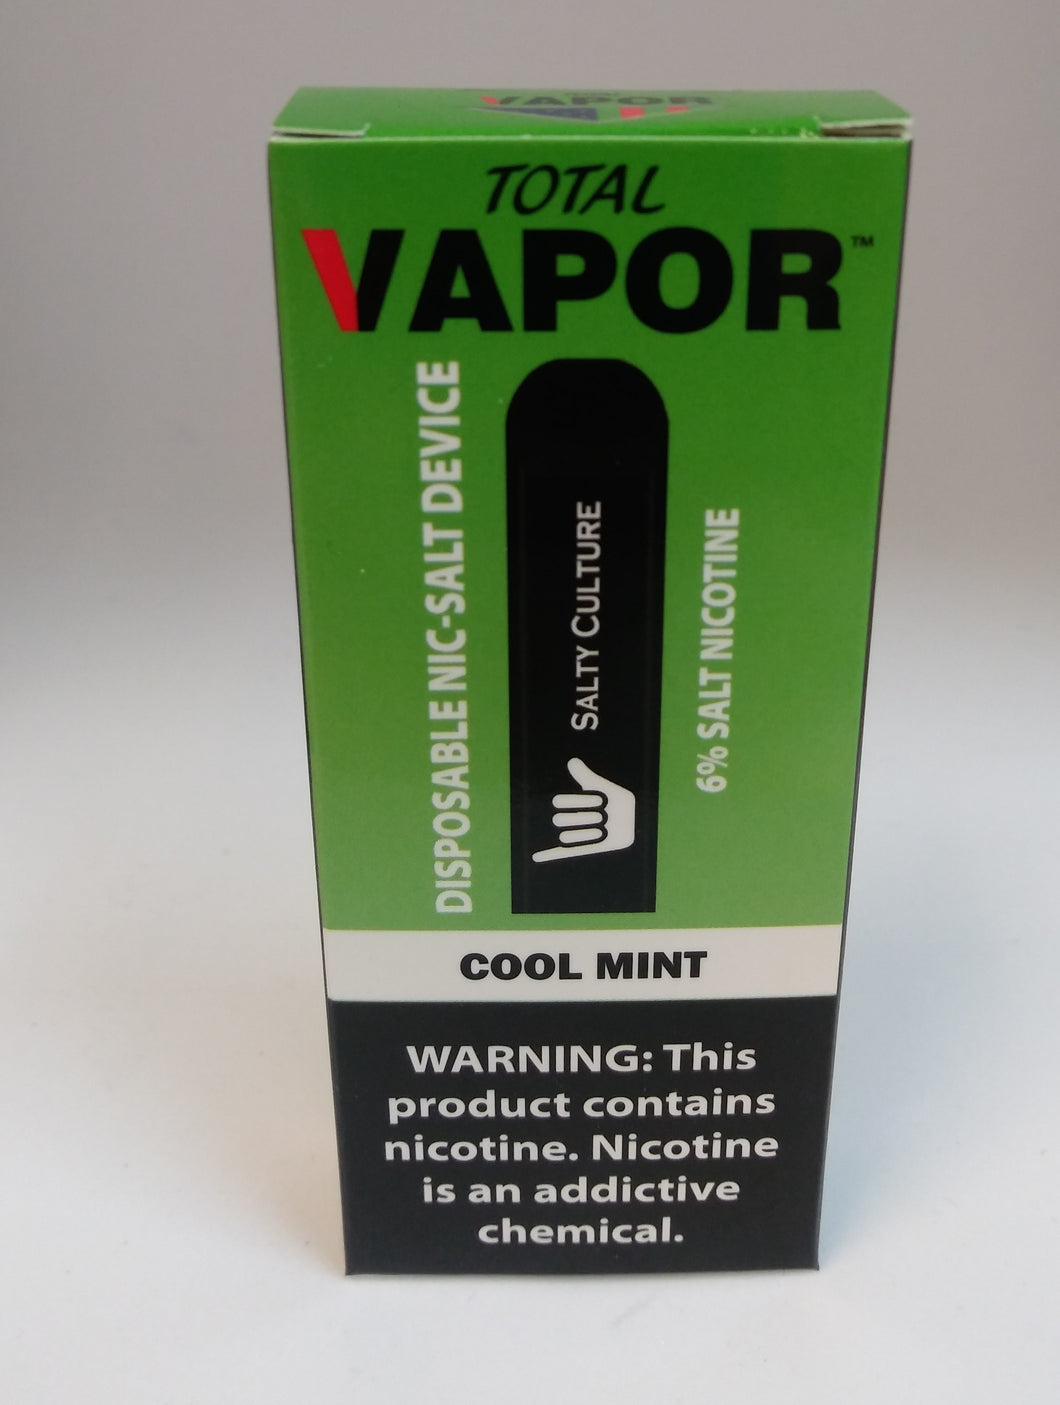 Total vapor-DISPOSABLE salt nic device-Cool mint